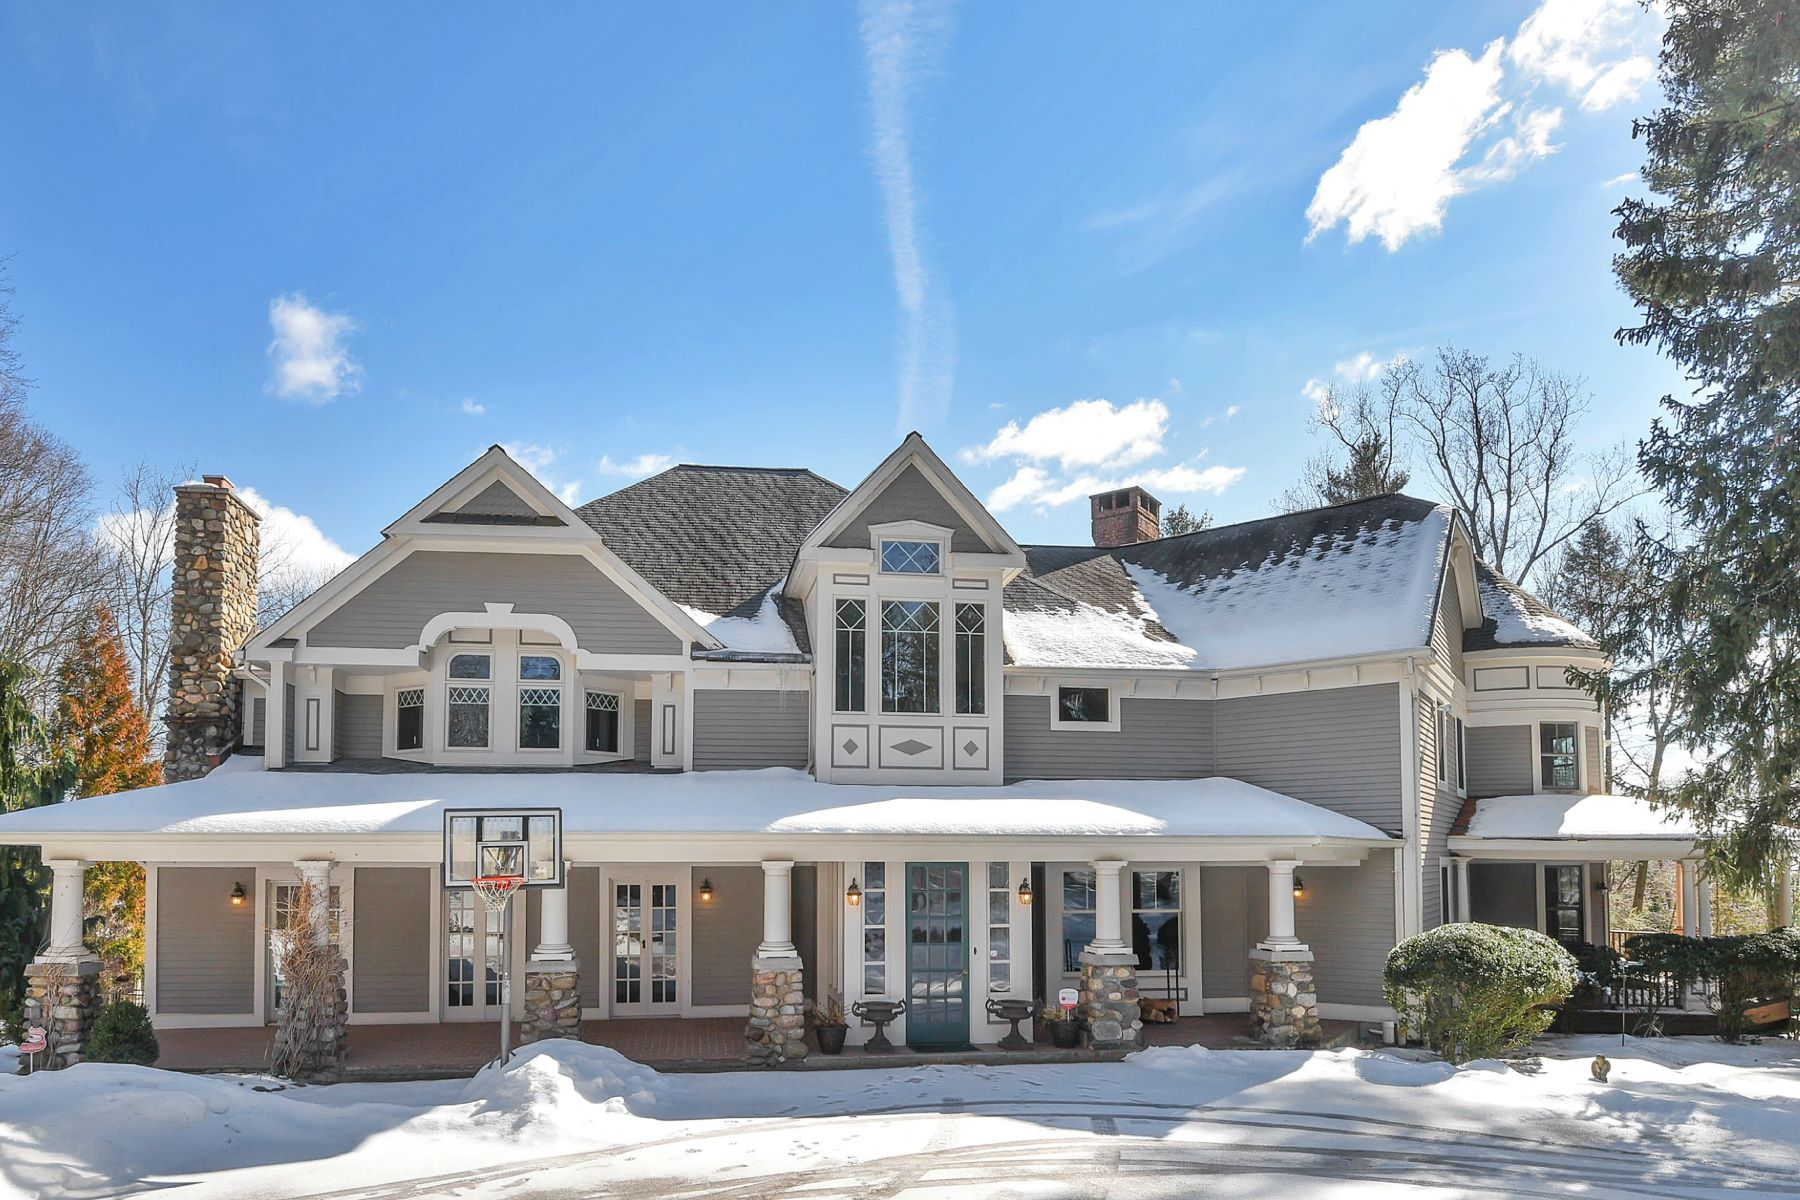 Single Family Home for Sale at Old World Charm 424 West Saddle River Road Upper Saddle River, 07458 United States